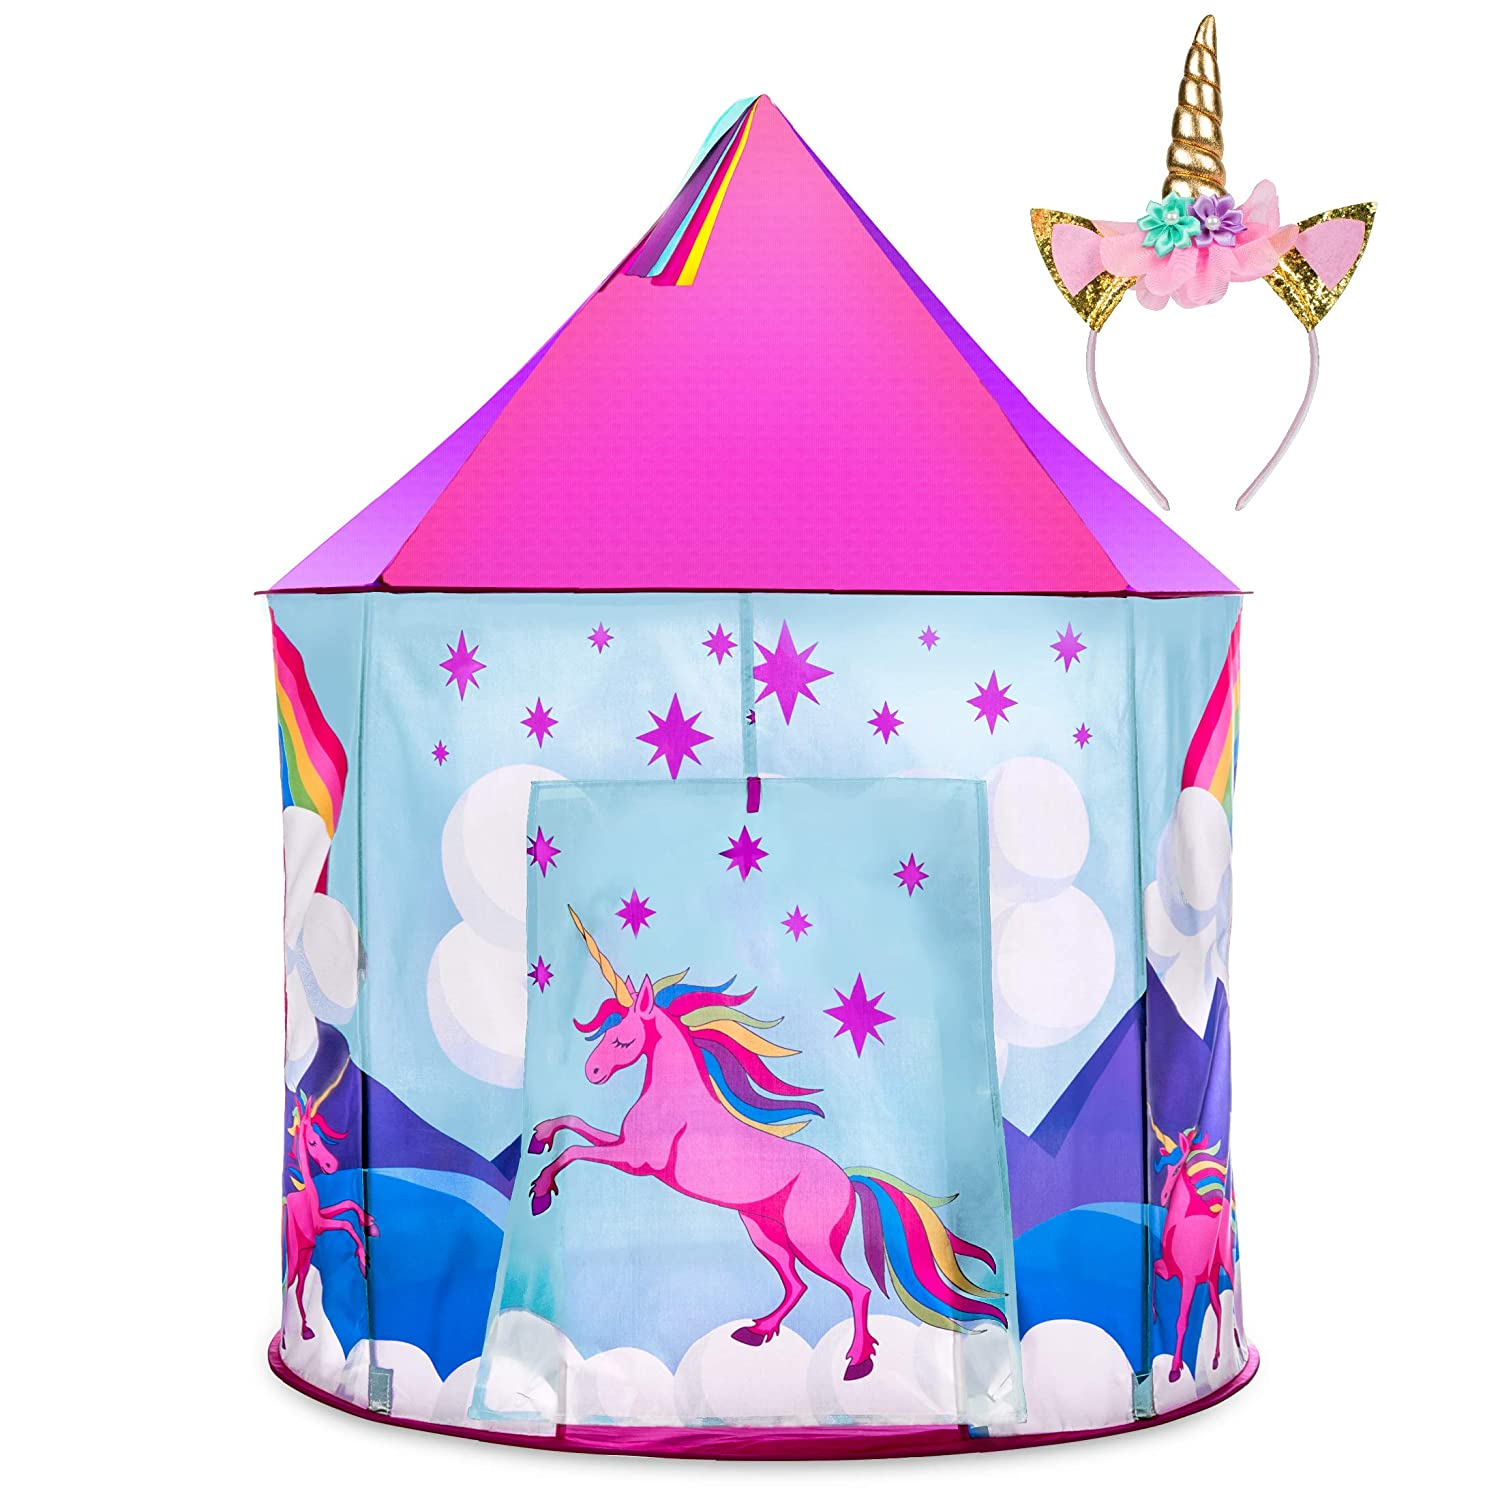 23 Best Unicorn Toys and Gifts for Girls Reviews of 2021 45